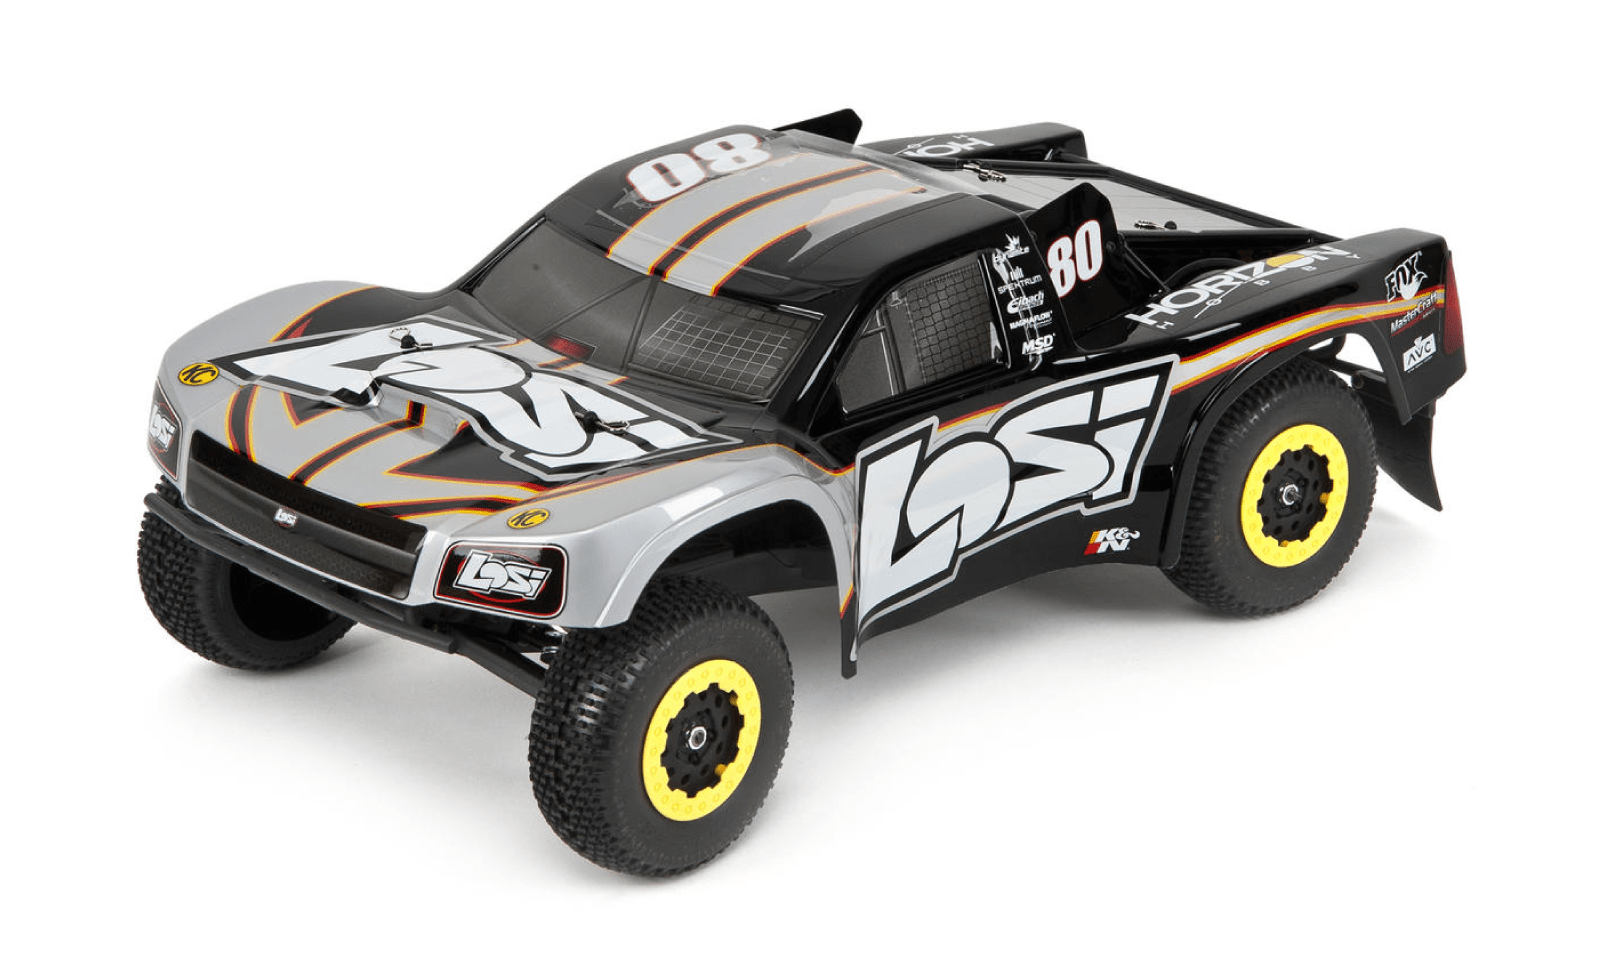 Rtr Rc Trucks Electric Team Losi Xxx Sct Review For 2019 This Truck Is A Beast Rc